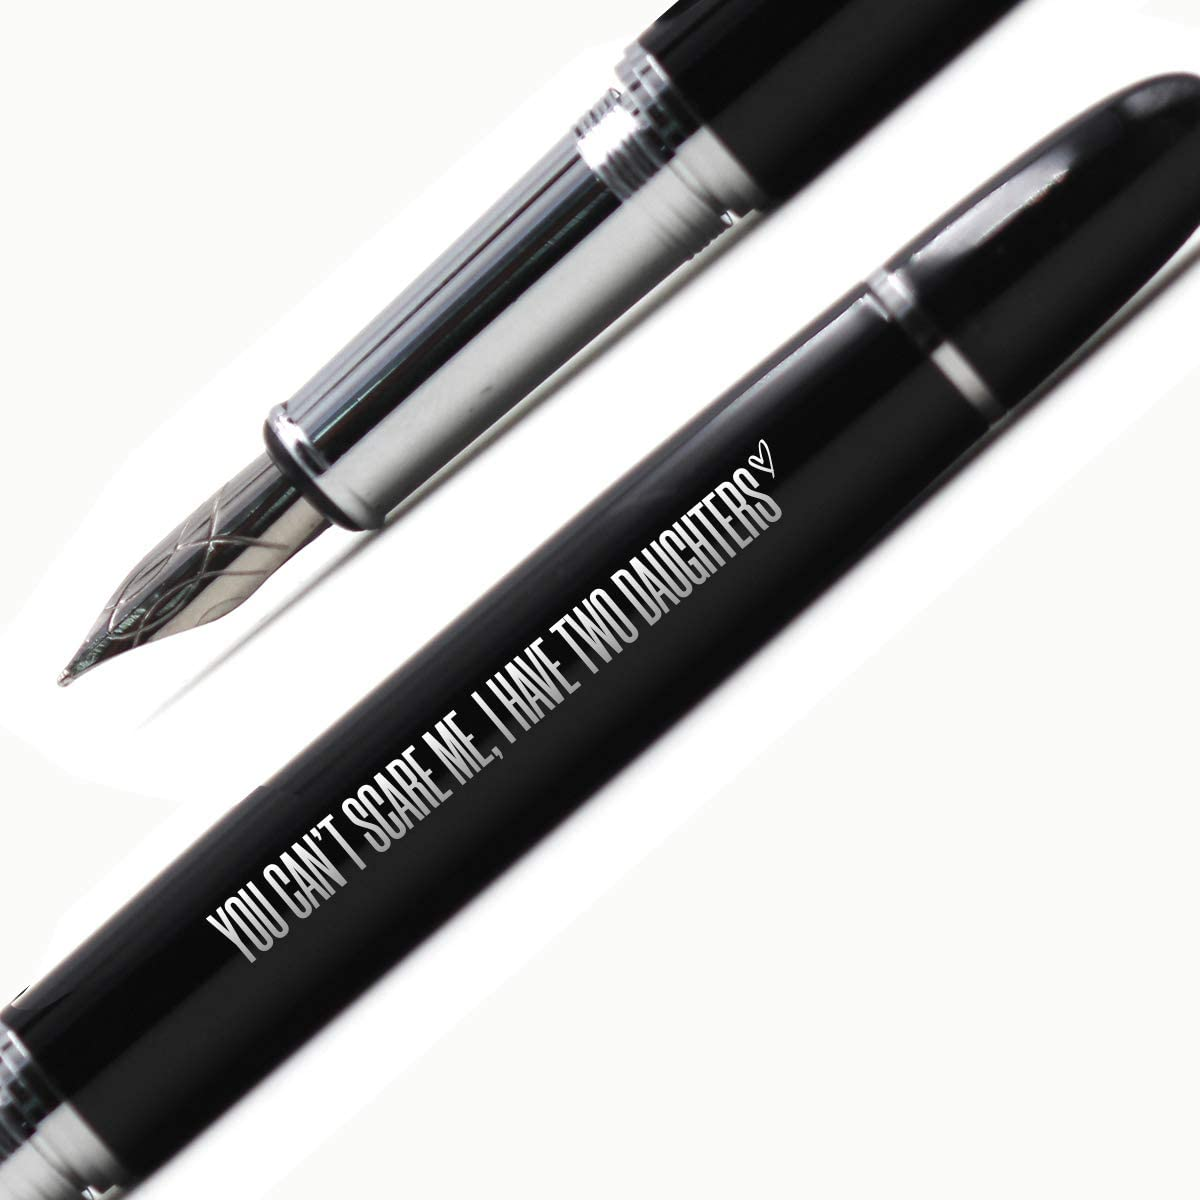 Dad Gifts from Daughter Funny Birthday Christmas Gifts for Daddy-You Can't Scare Me,I Have Two Daughters-Fountain Pen Gift[Silver]